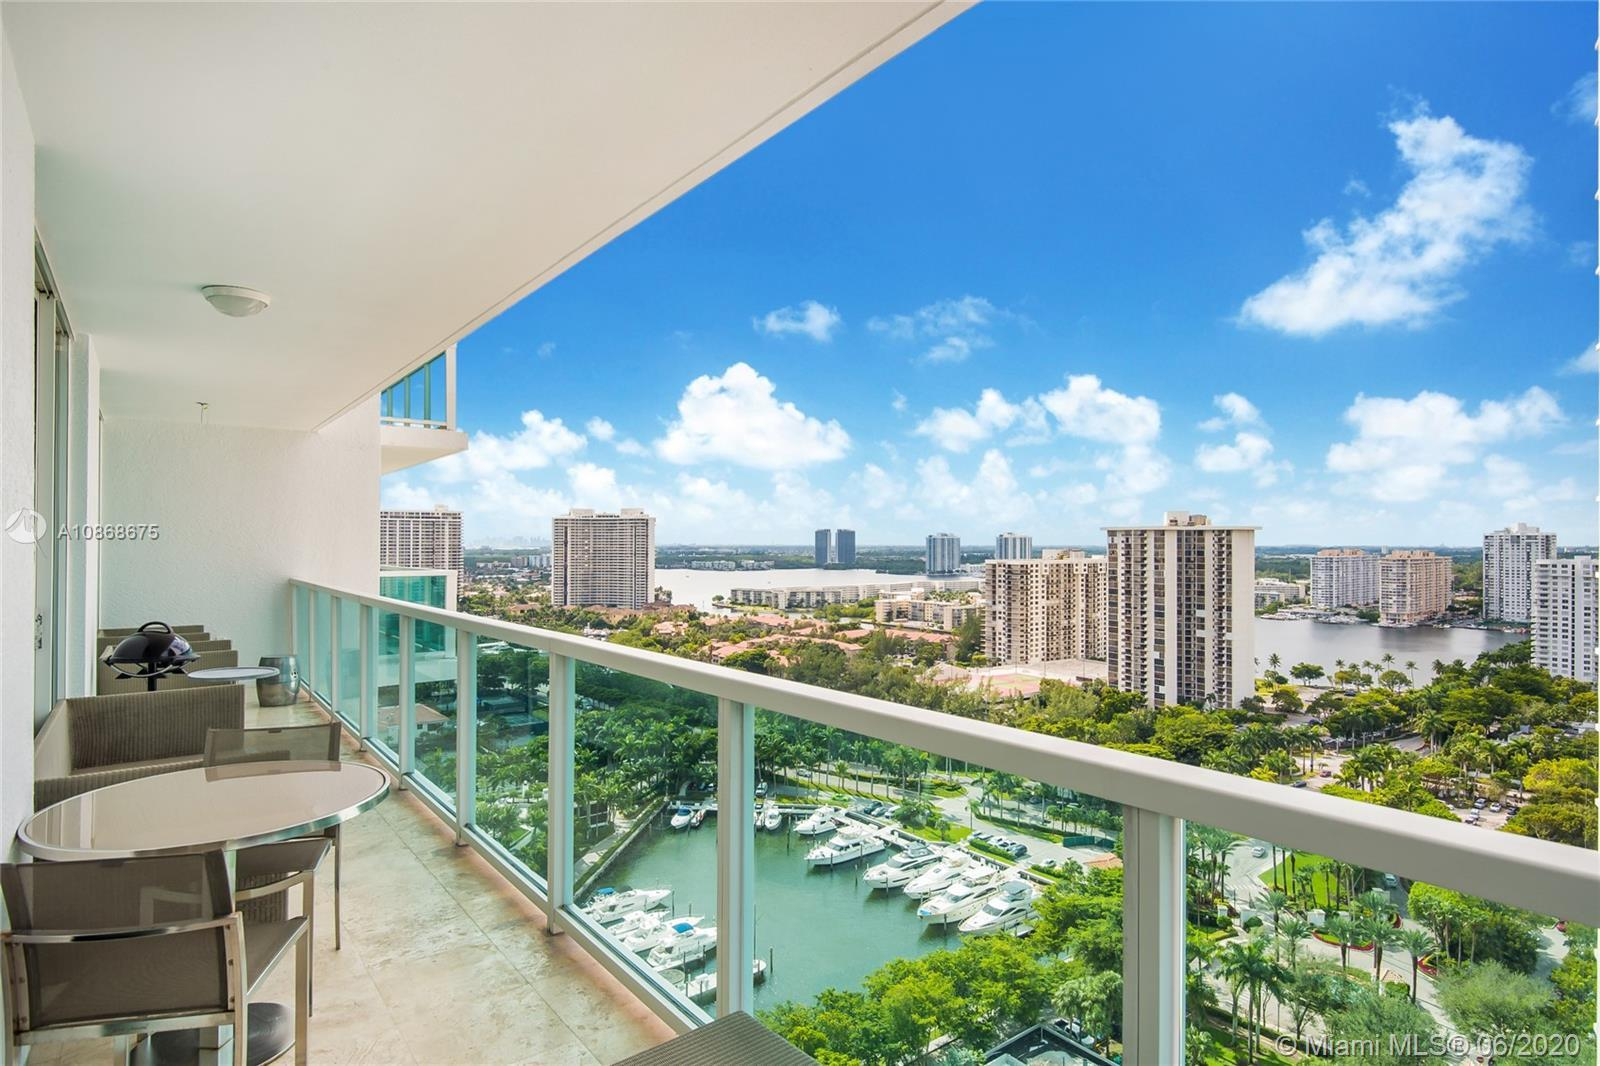 Impeccable unit fully furnished on a high floor. 3 bedrooms +den +3 bathrooms on a spacious 3.274 sf